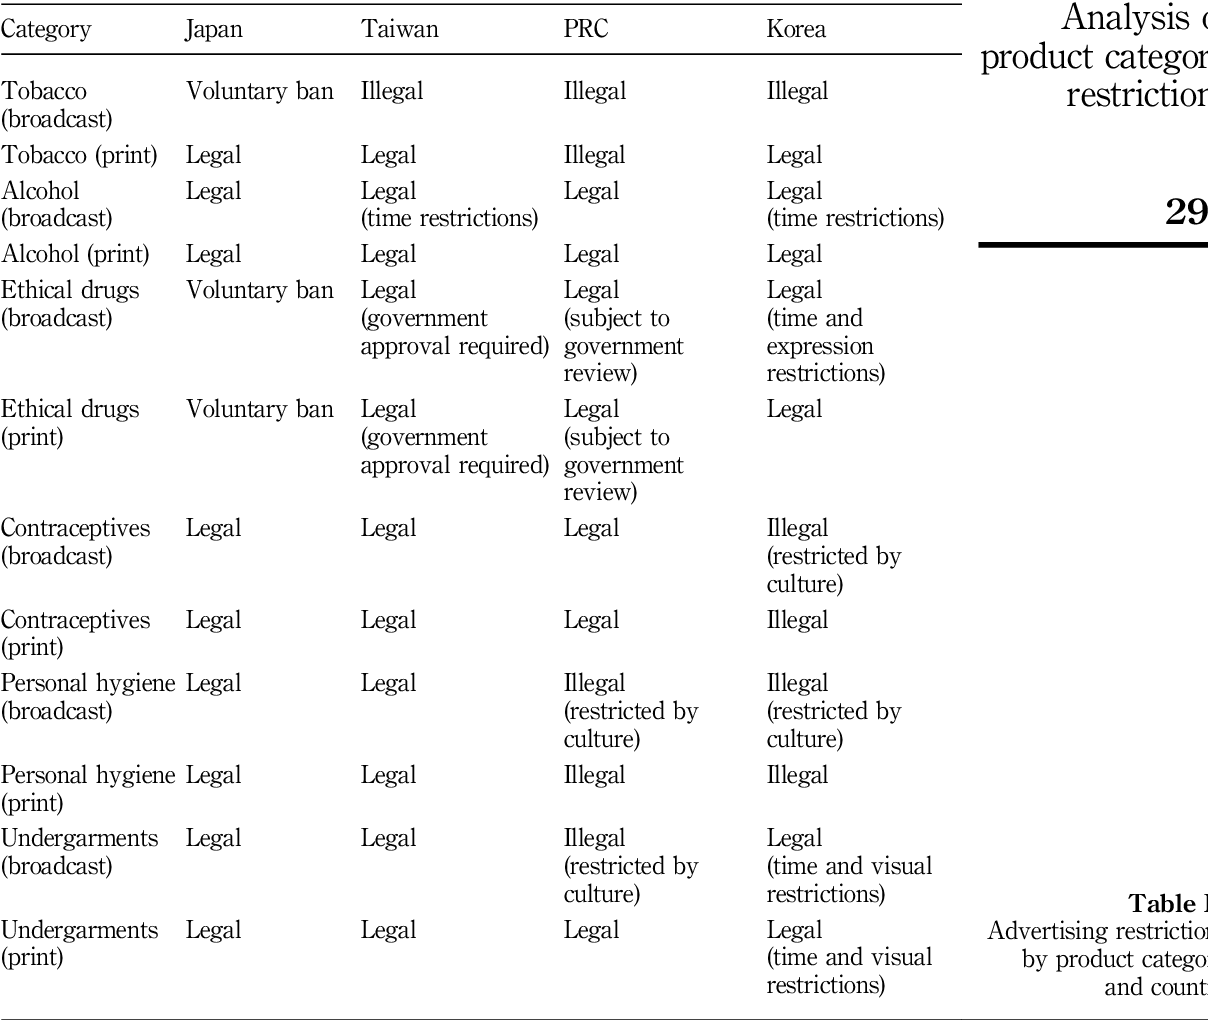 Pdf An Analysis Of Product Category Restrictions In